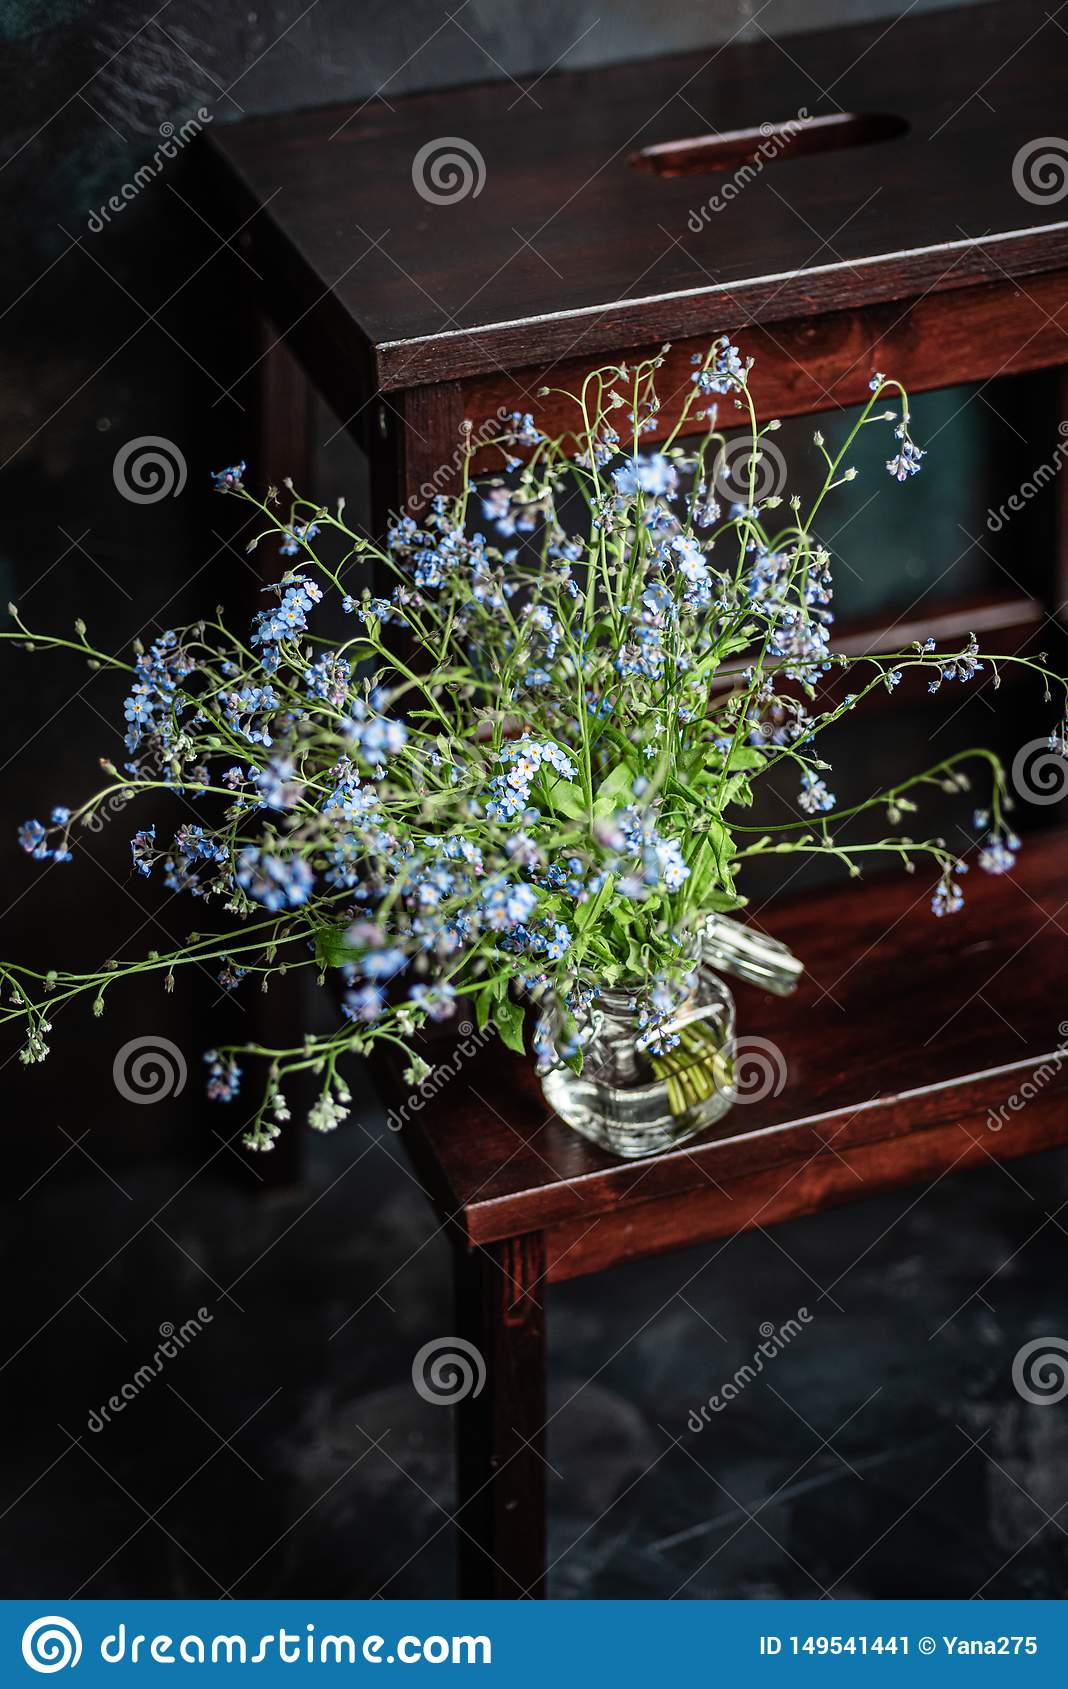 Forget-me-not`s bouquet in small glass jar on wooden stool, dark background